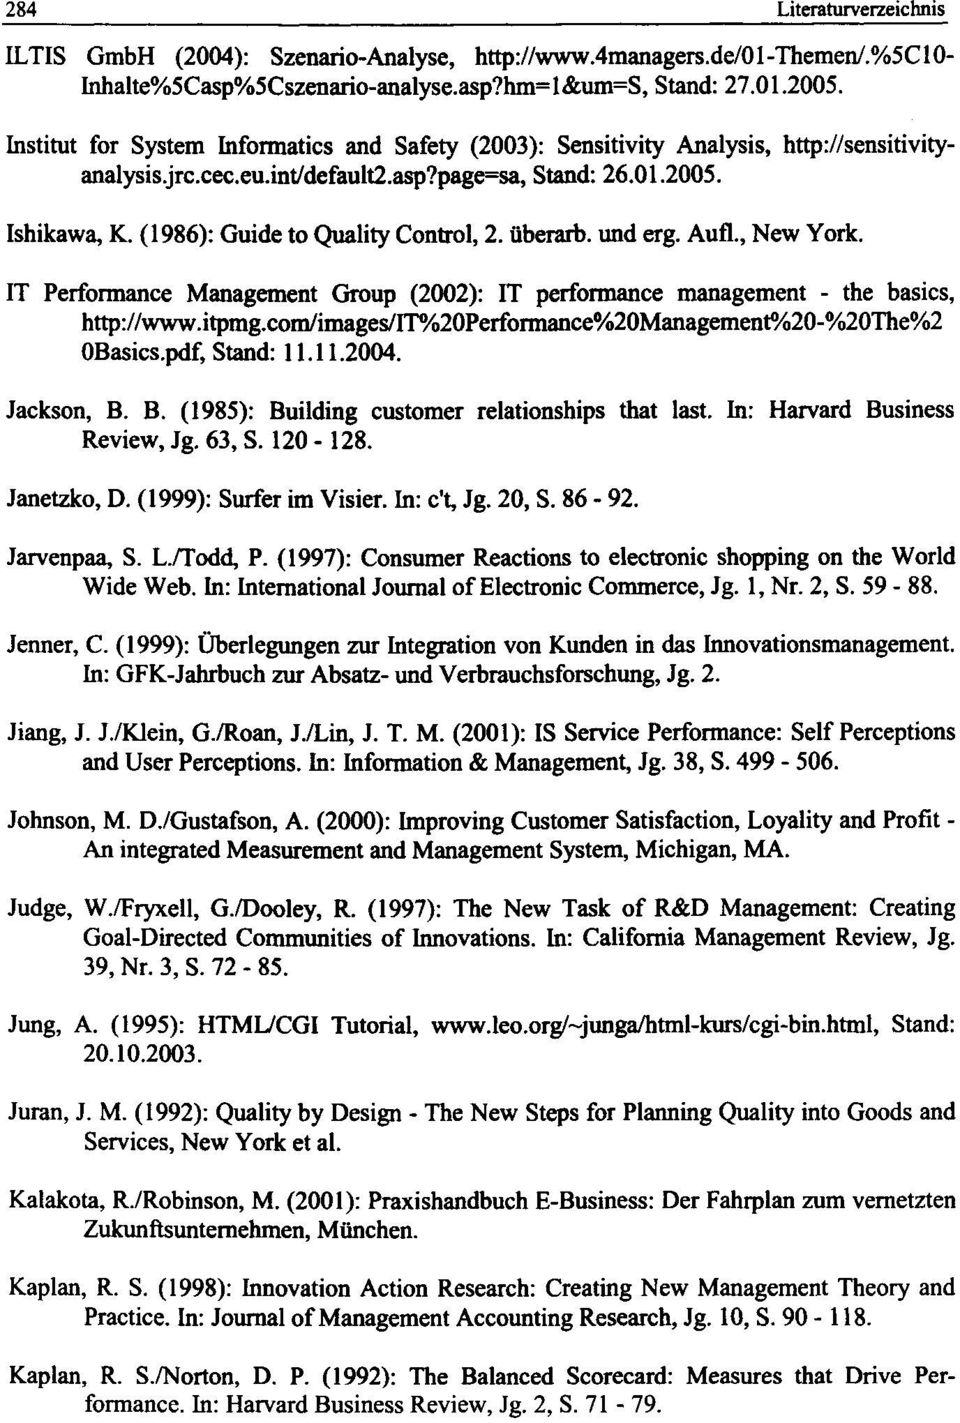 (1986): Guide to Quality Control, 2. iiberaib. und erg. Aufl., New York. IT Performance Management Group (2002): IT performance management - the basics, http://www.itpmg.